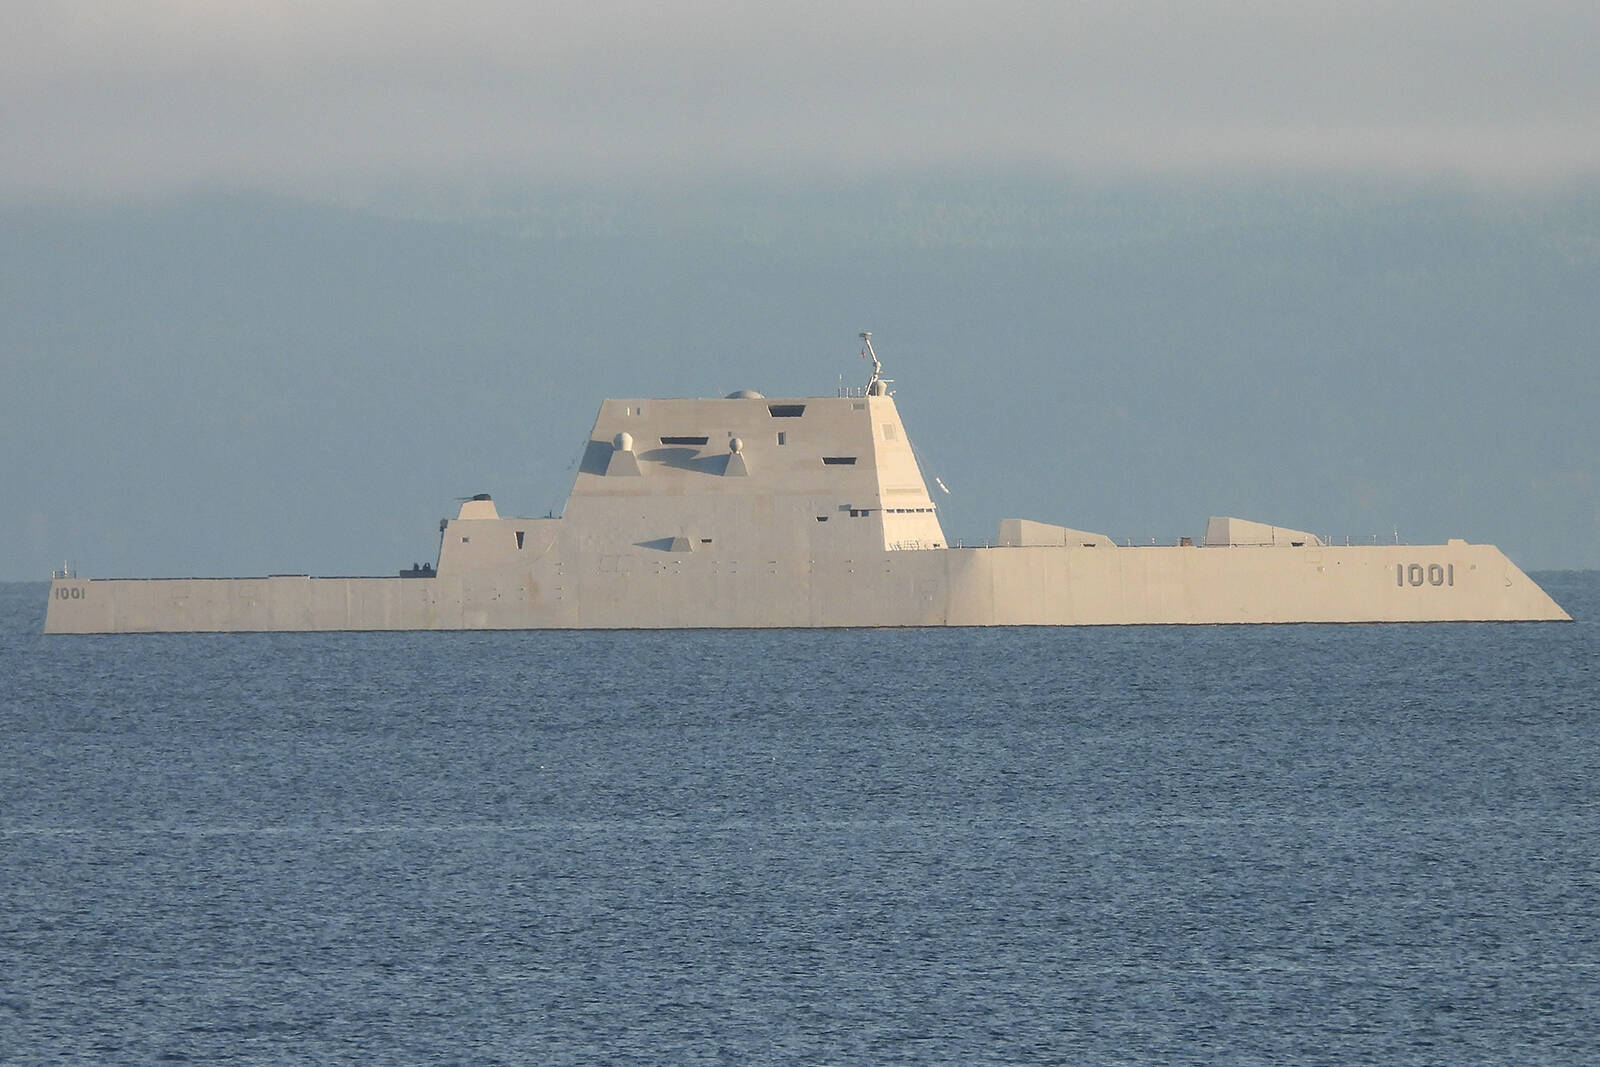 The Zumwalt-class destroyer USS Michael Monsoor was spotted sailing the waters in the Strait of Georgia near Nanaimo on Monday, Oct. 18. (Photo courtesy Tami Mullaly)